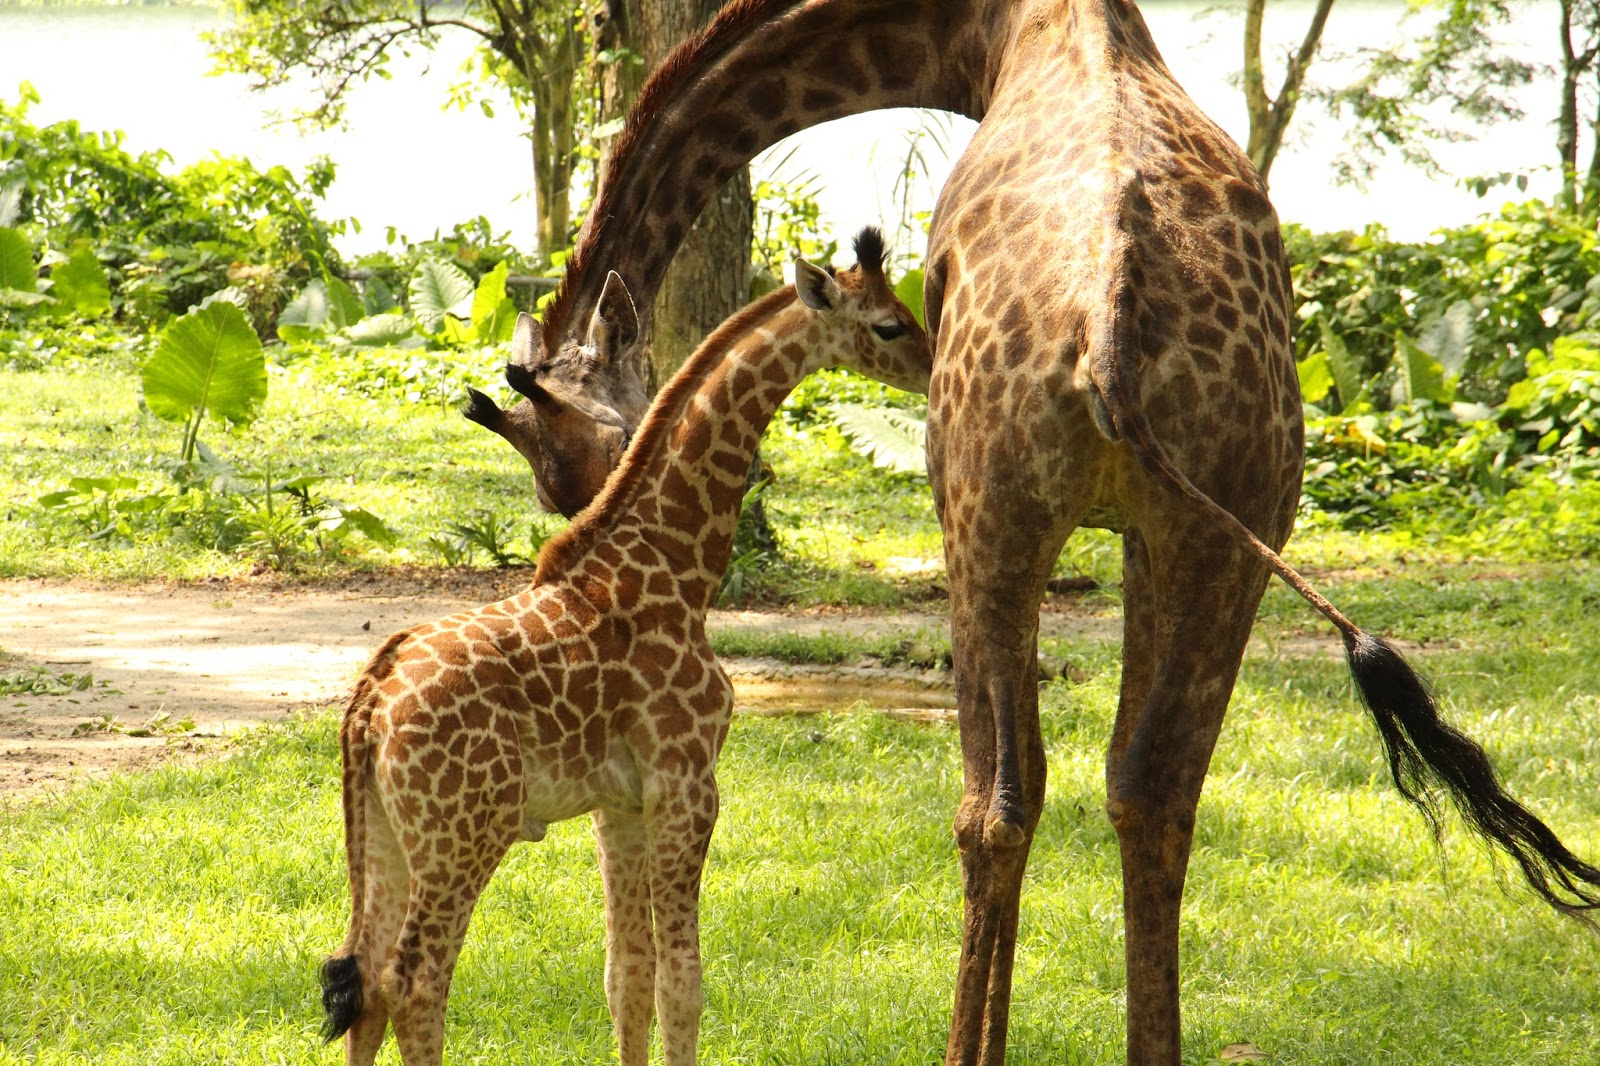 TALLEST SG50 BABY SPOTTED IN SINGAPORE ZOO